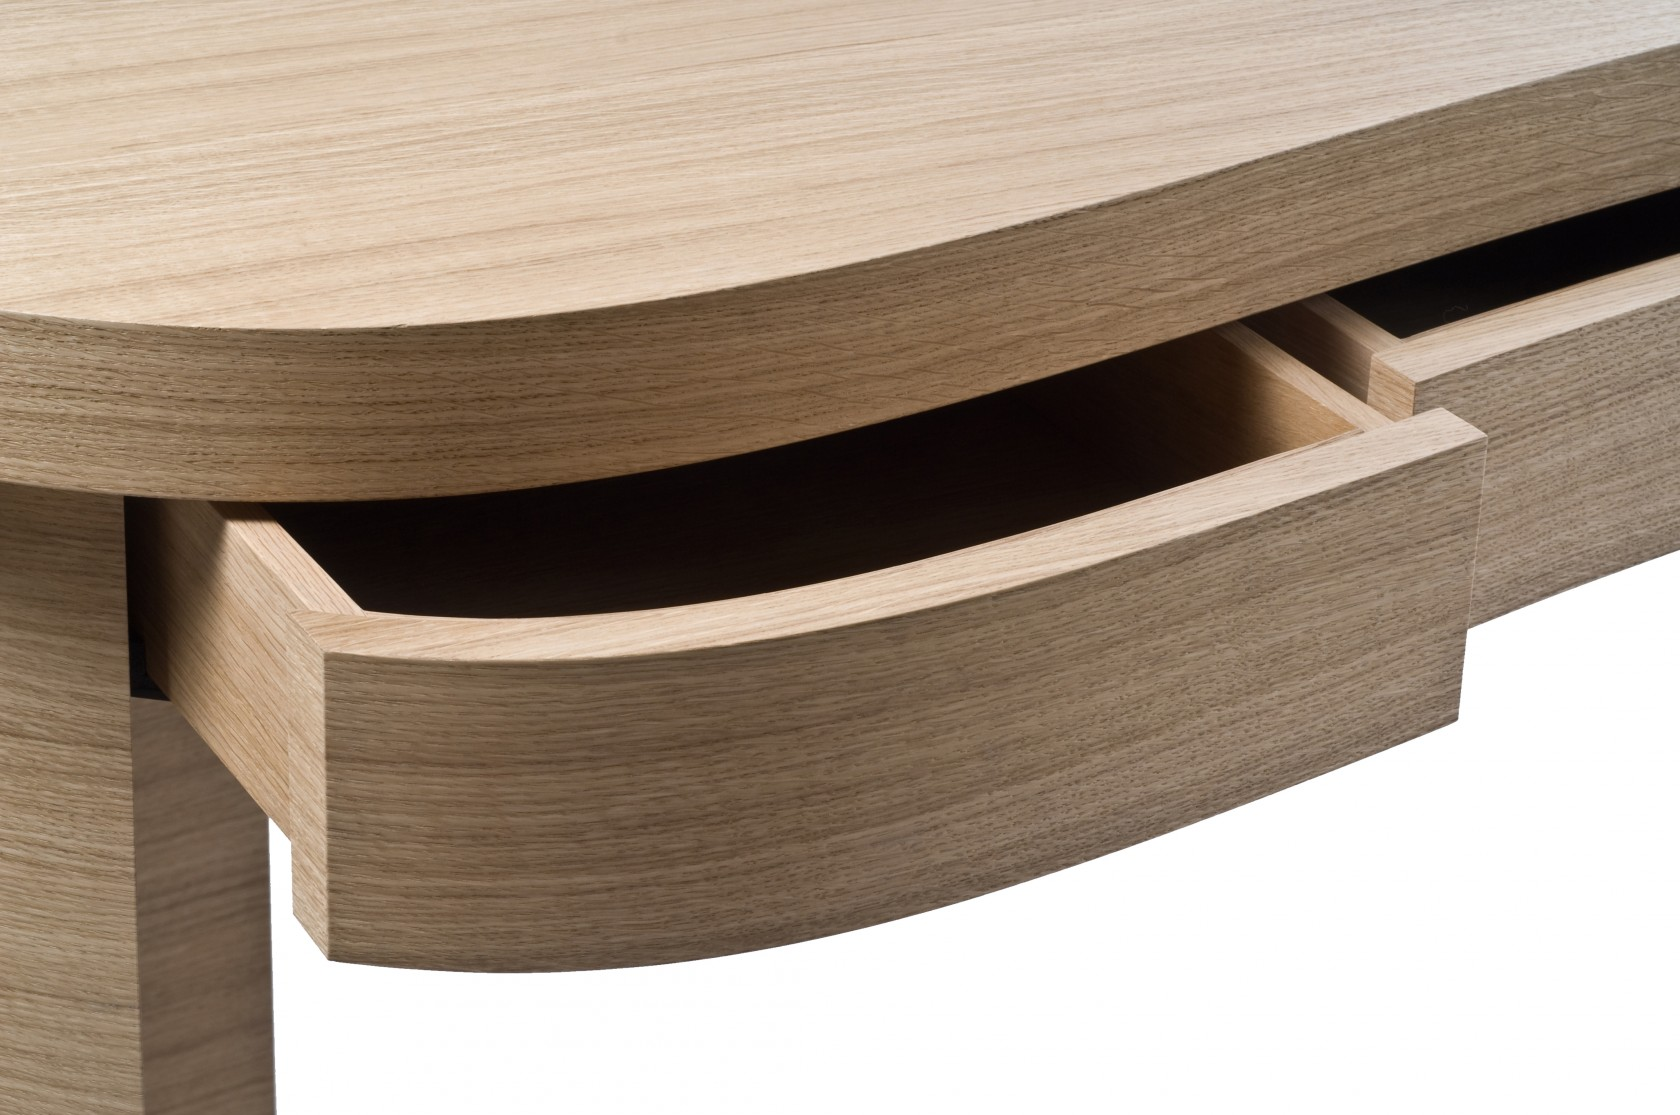 desk in oak and streel ludovic avenel b niste cr ateur. Black Bedroom Furniture Sets. Home Design Ideas